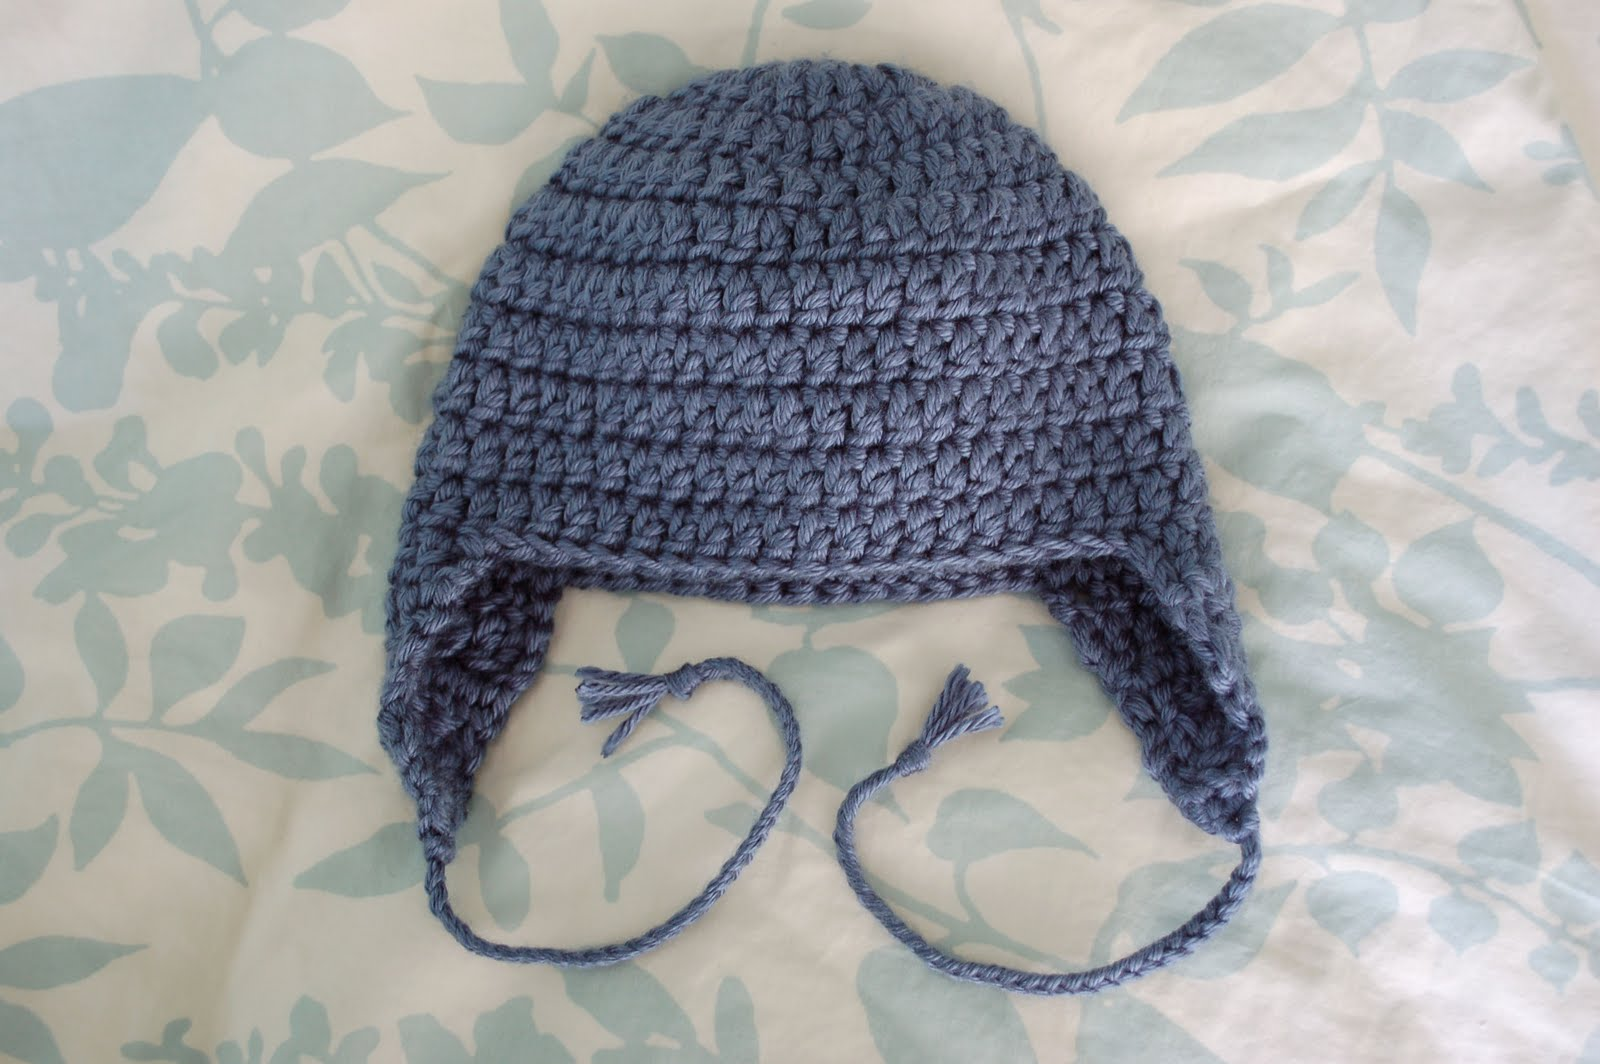 Crochet Pattern For Newborn Hat With Ear Flaps : Alli Crafts: Free Pattern: Kids Earflap Hat